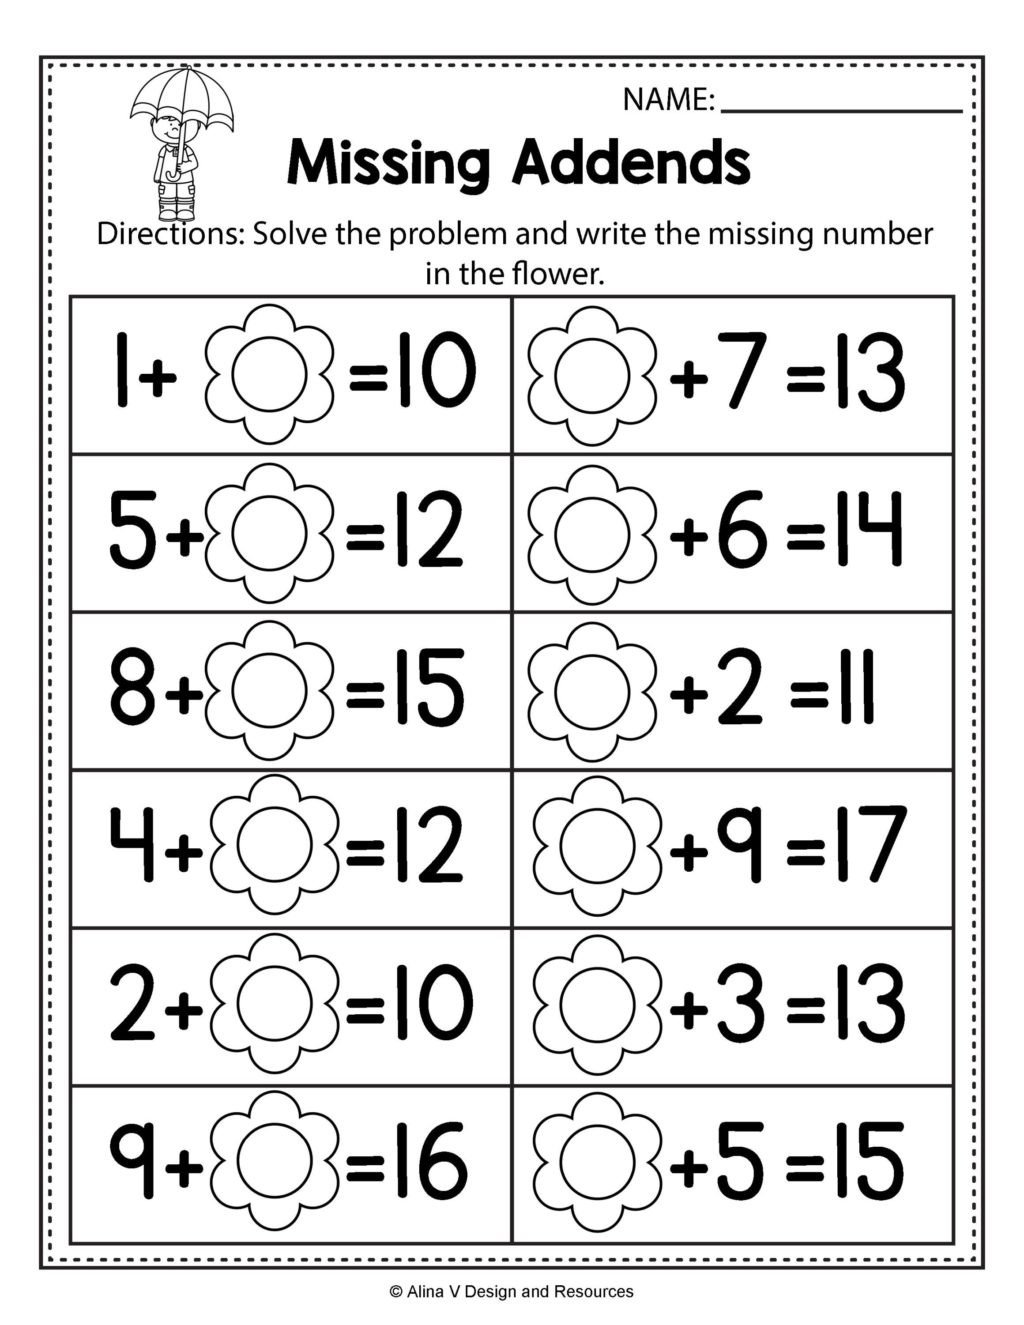 worksheetee spring math worksheets for kindergarten no prep allied on fantastic maths photo inspirations printable number bonds 1024x1325